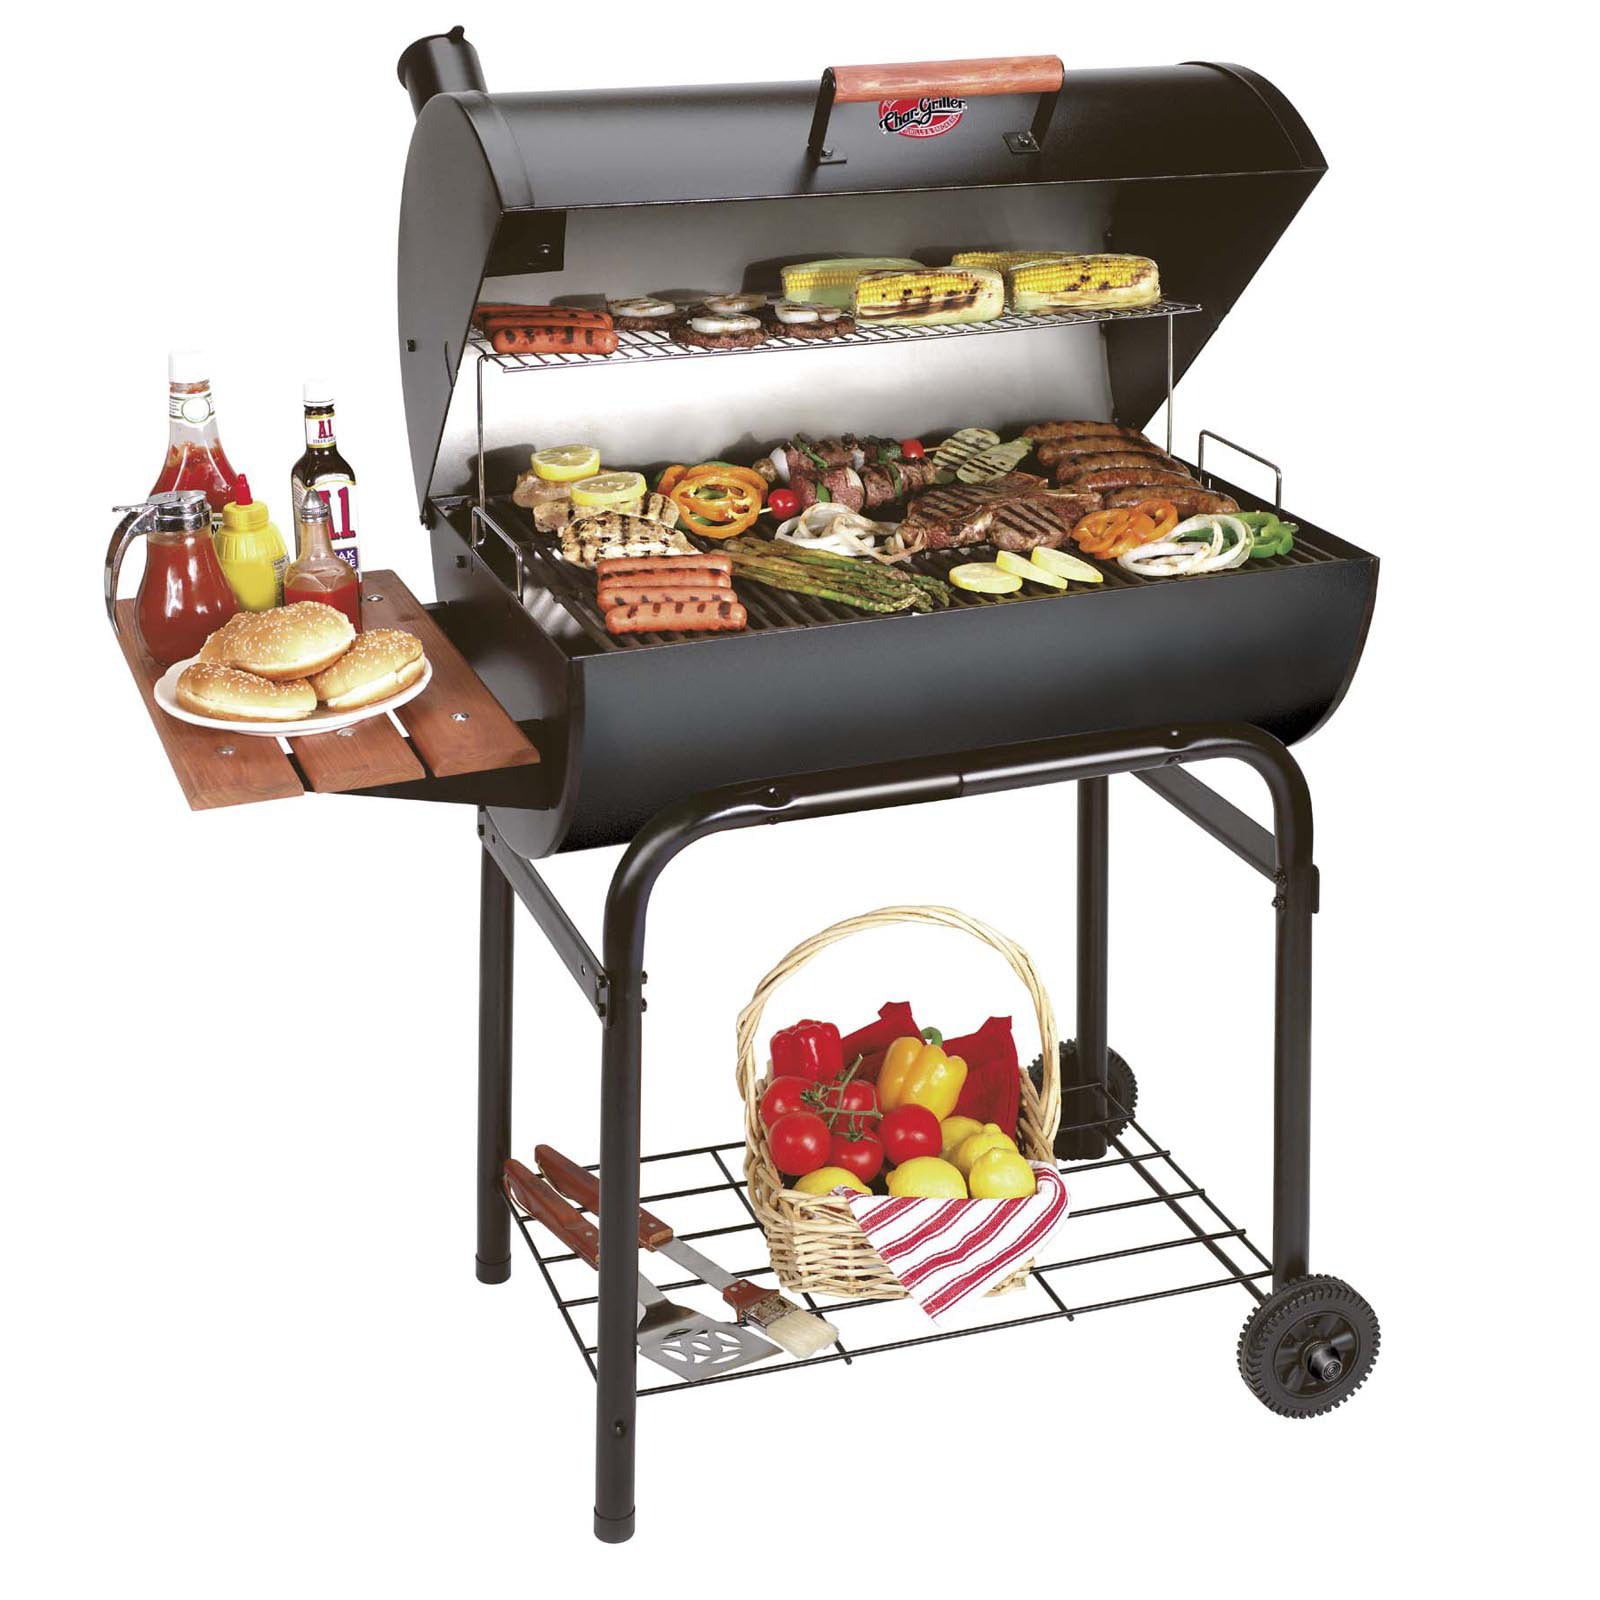 Patio Pro Charcoal Grill Home Design Ideas and